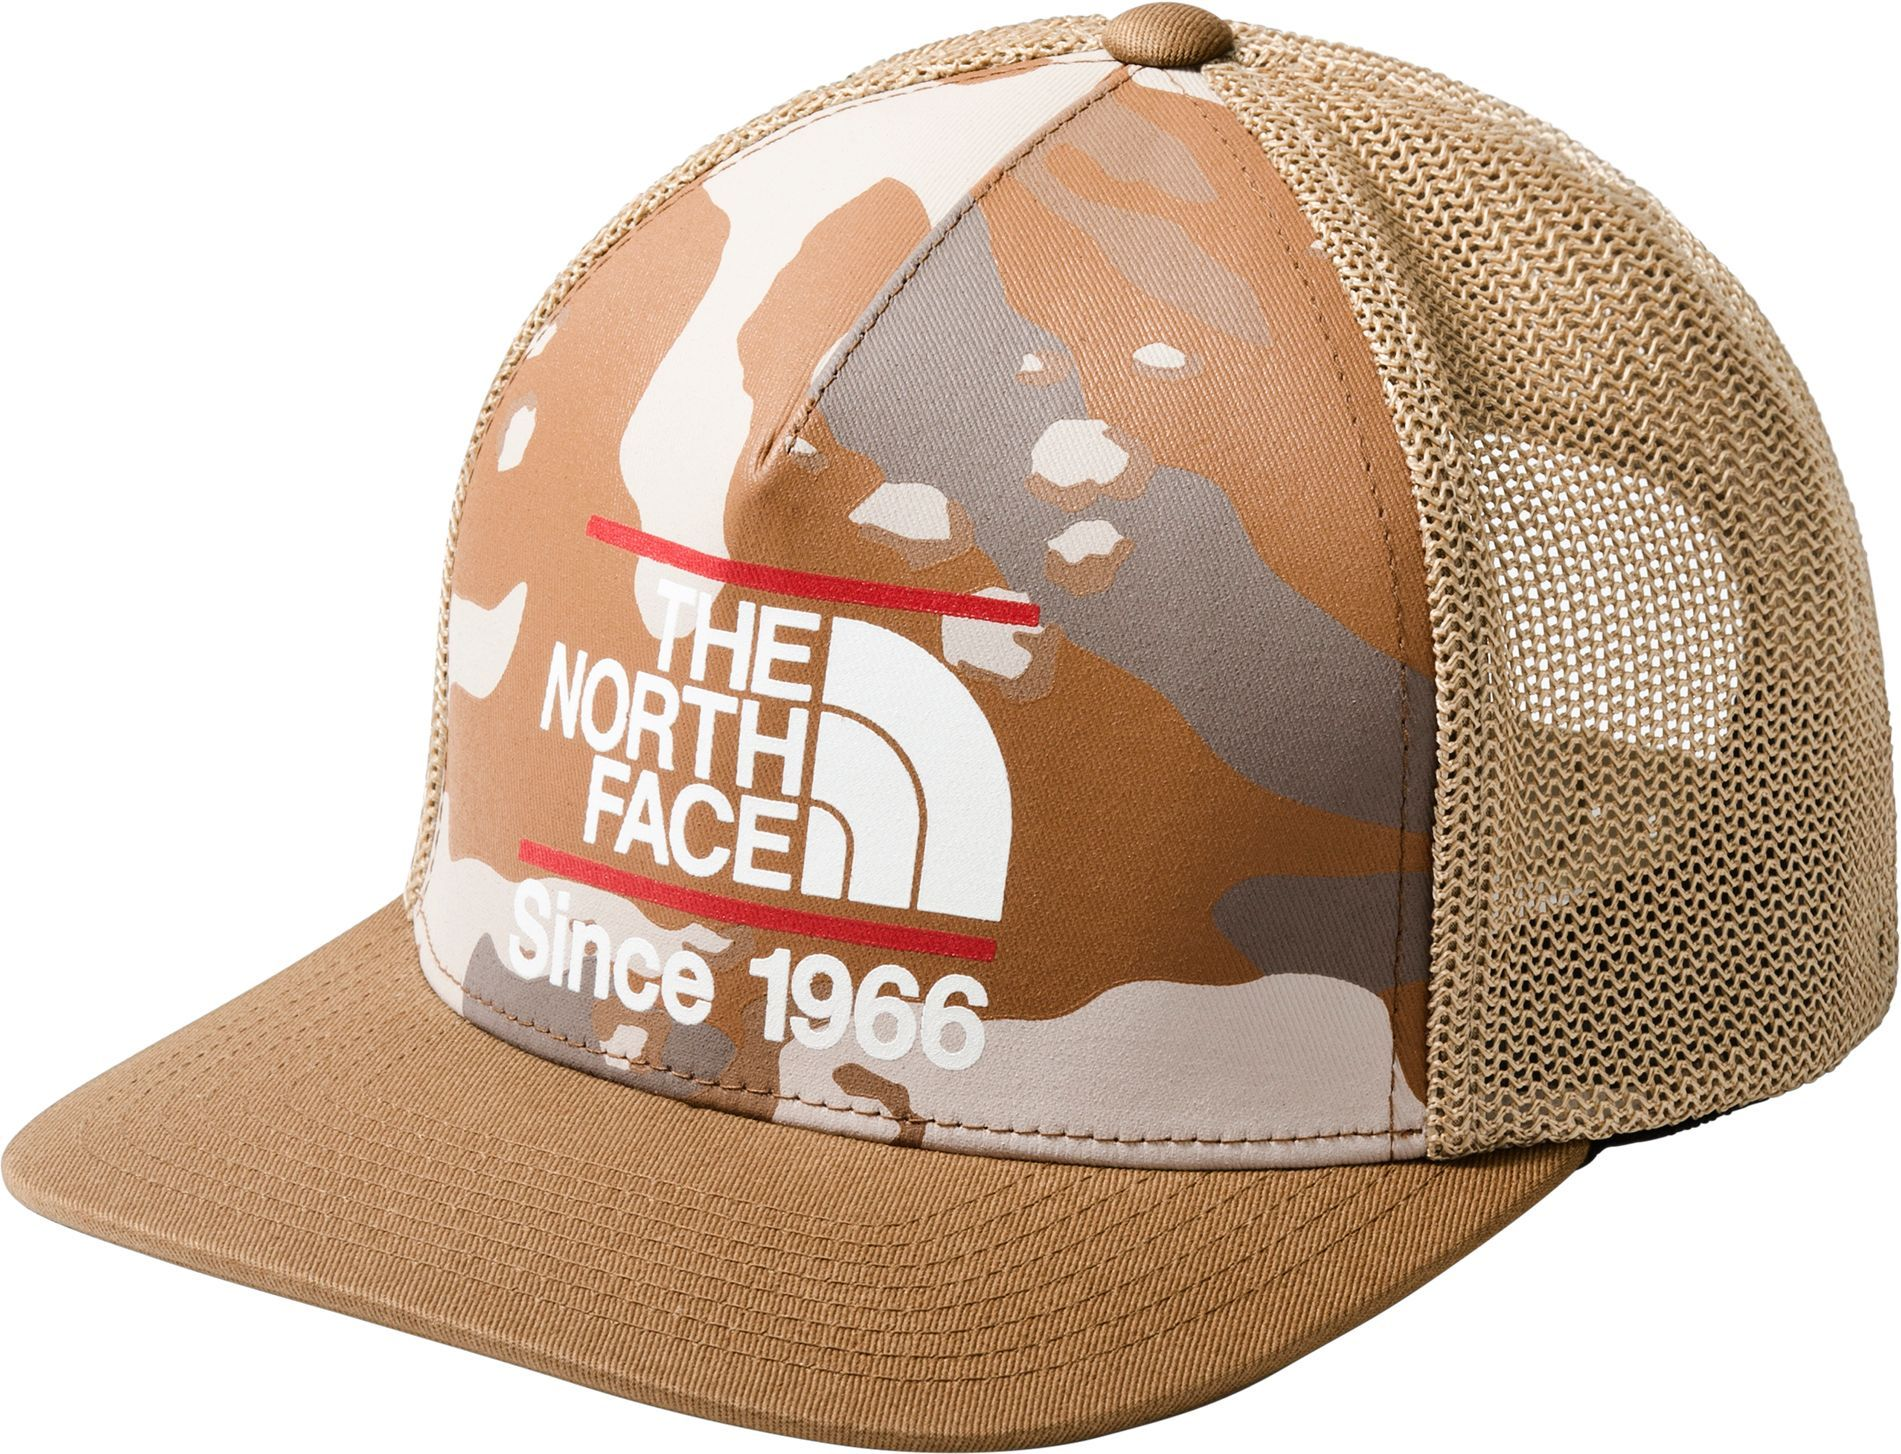 Pin On New Cap Color Ideas